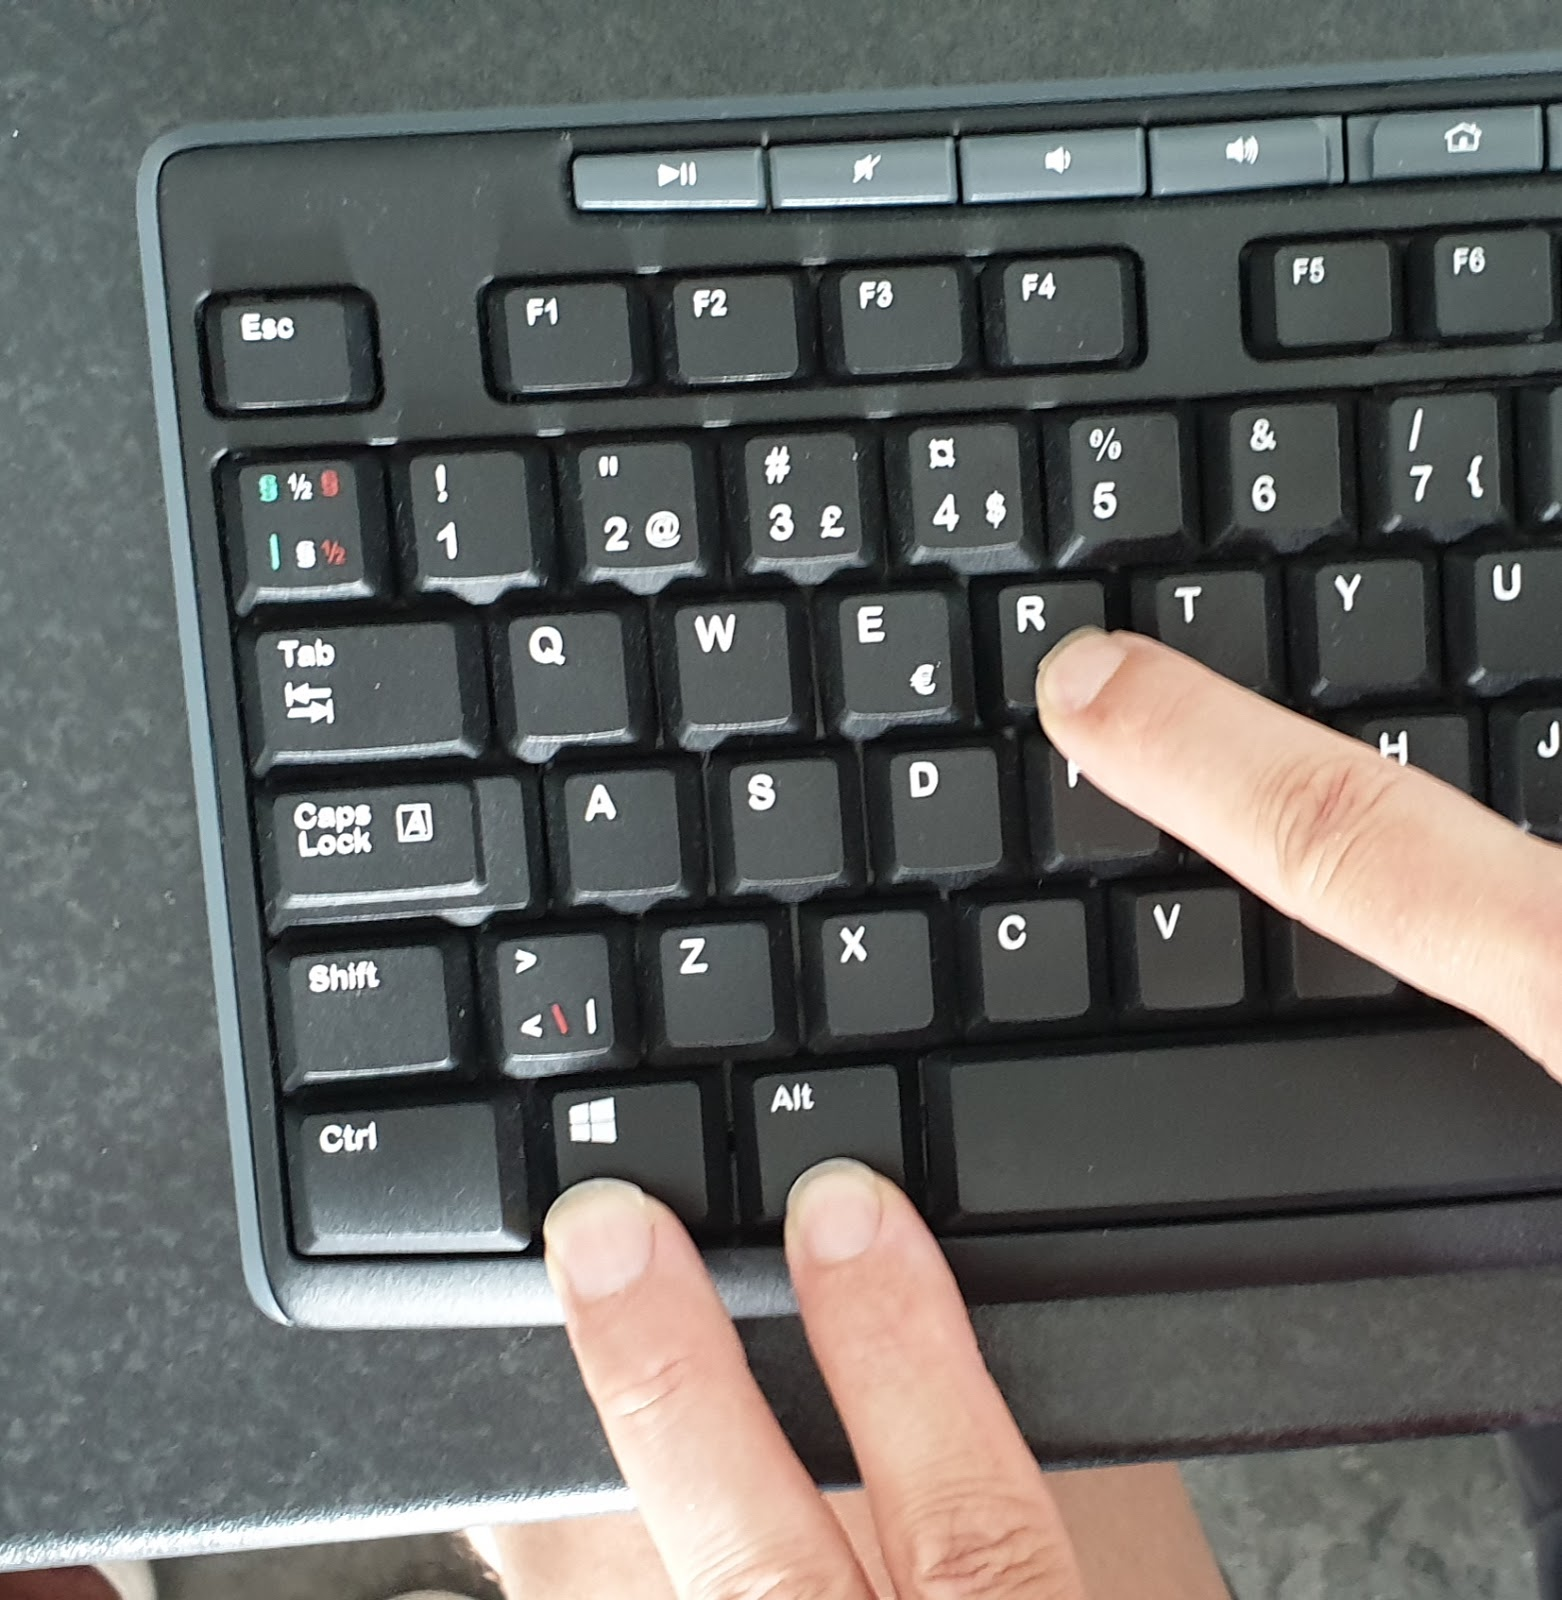 Boot to recover on a mac form a windows keyboard